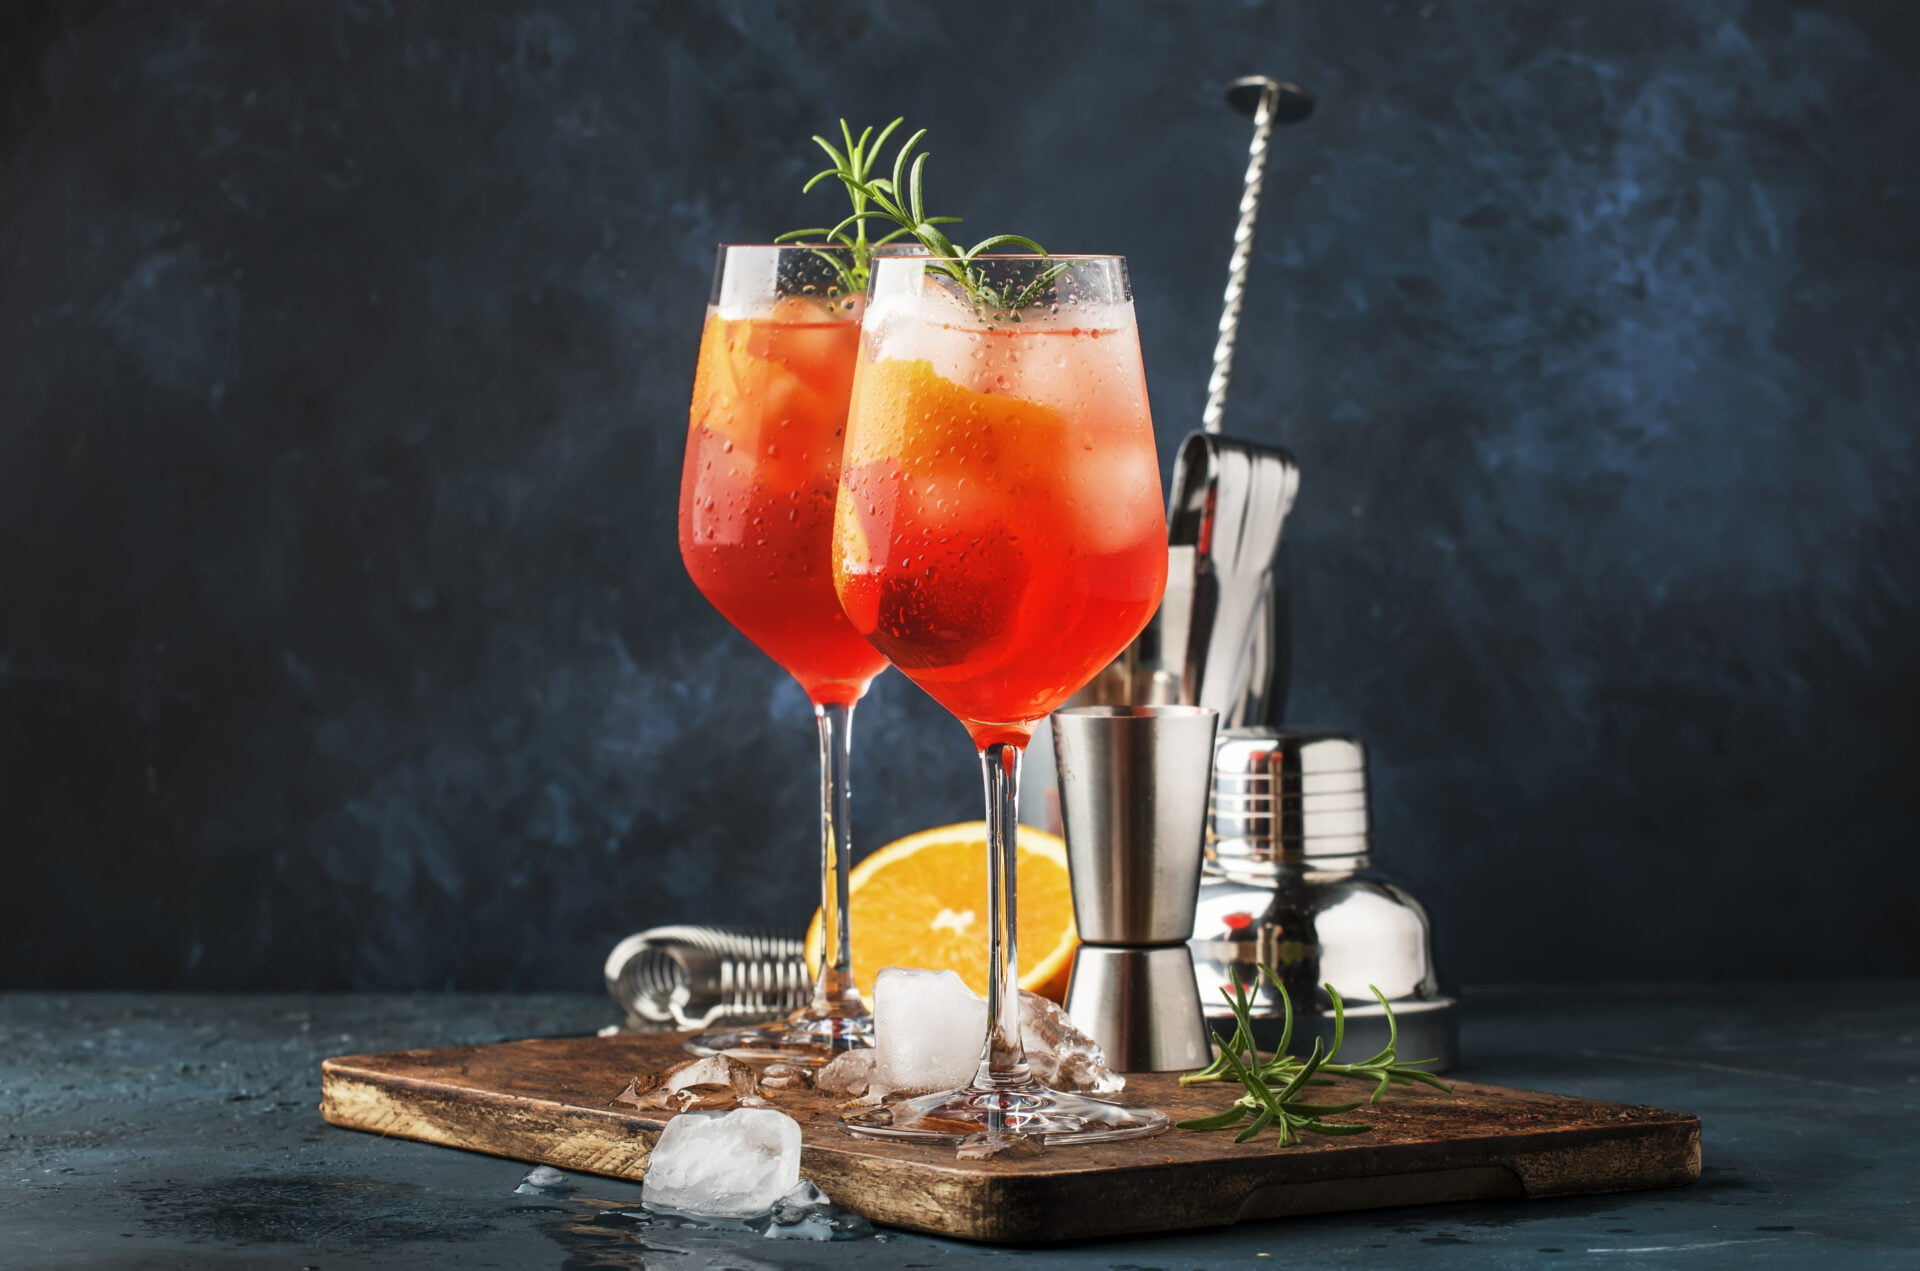 Milano spritzer alcoholic cocktail with red bitter, dry white wine, soda, zest and ice